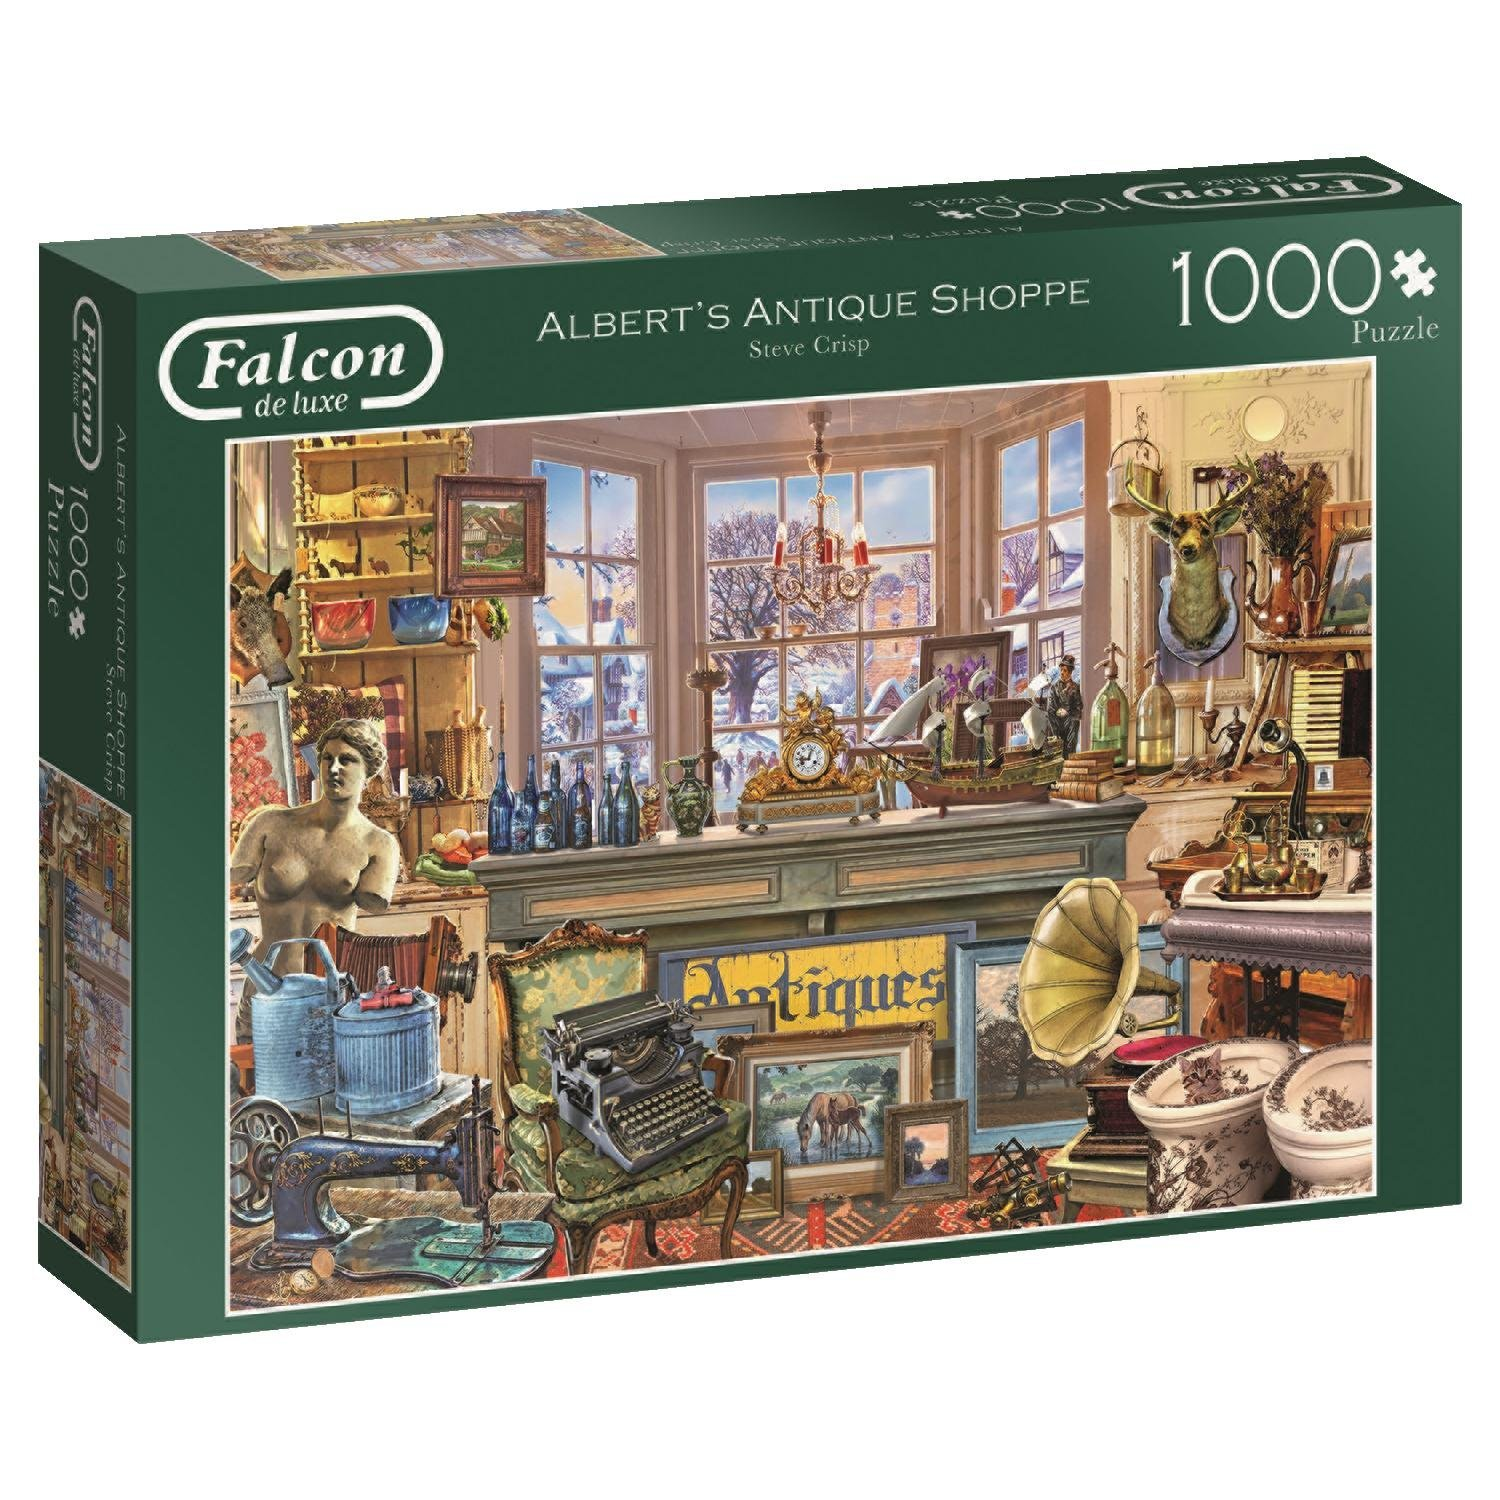 Falcon, Albert's Antique Shoppe, 1000pc Jumbo Jigsaw